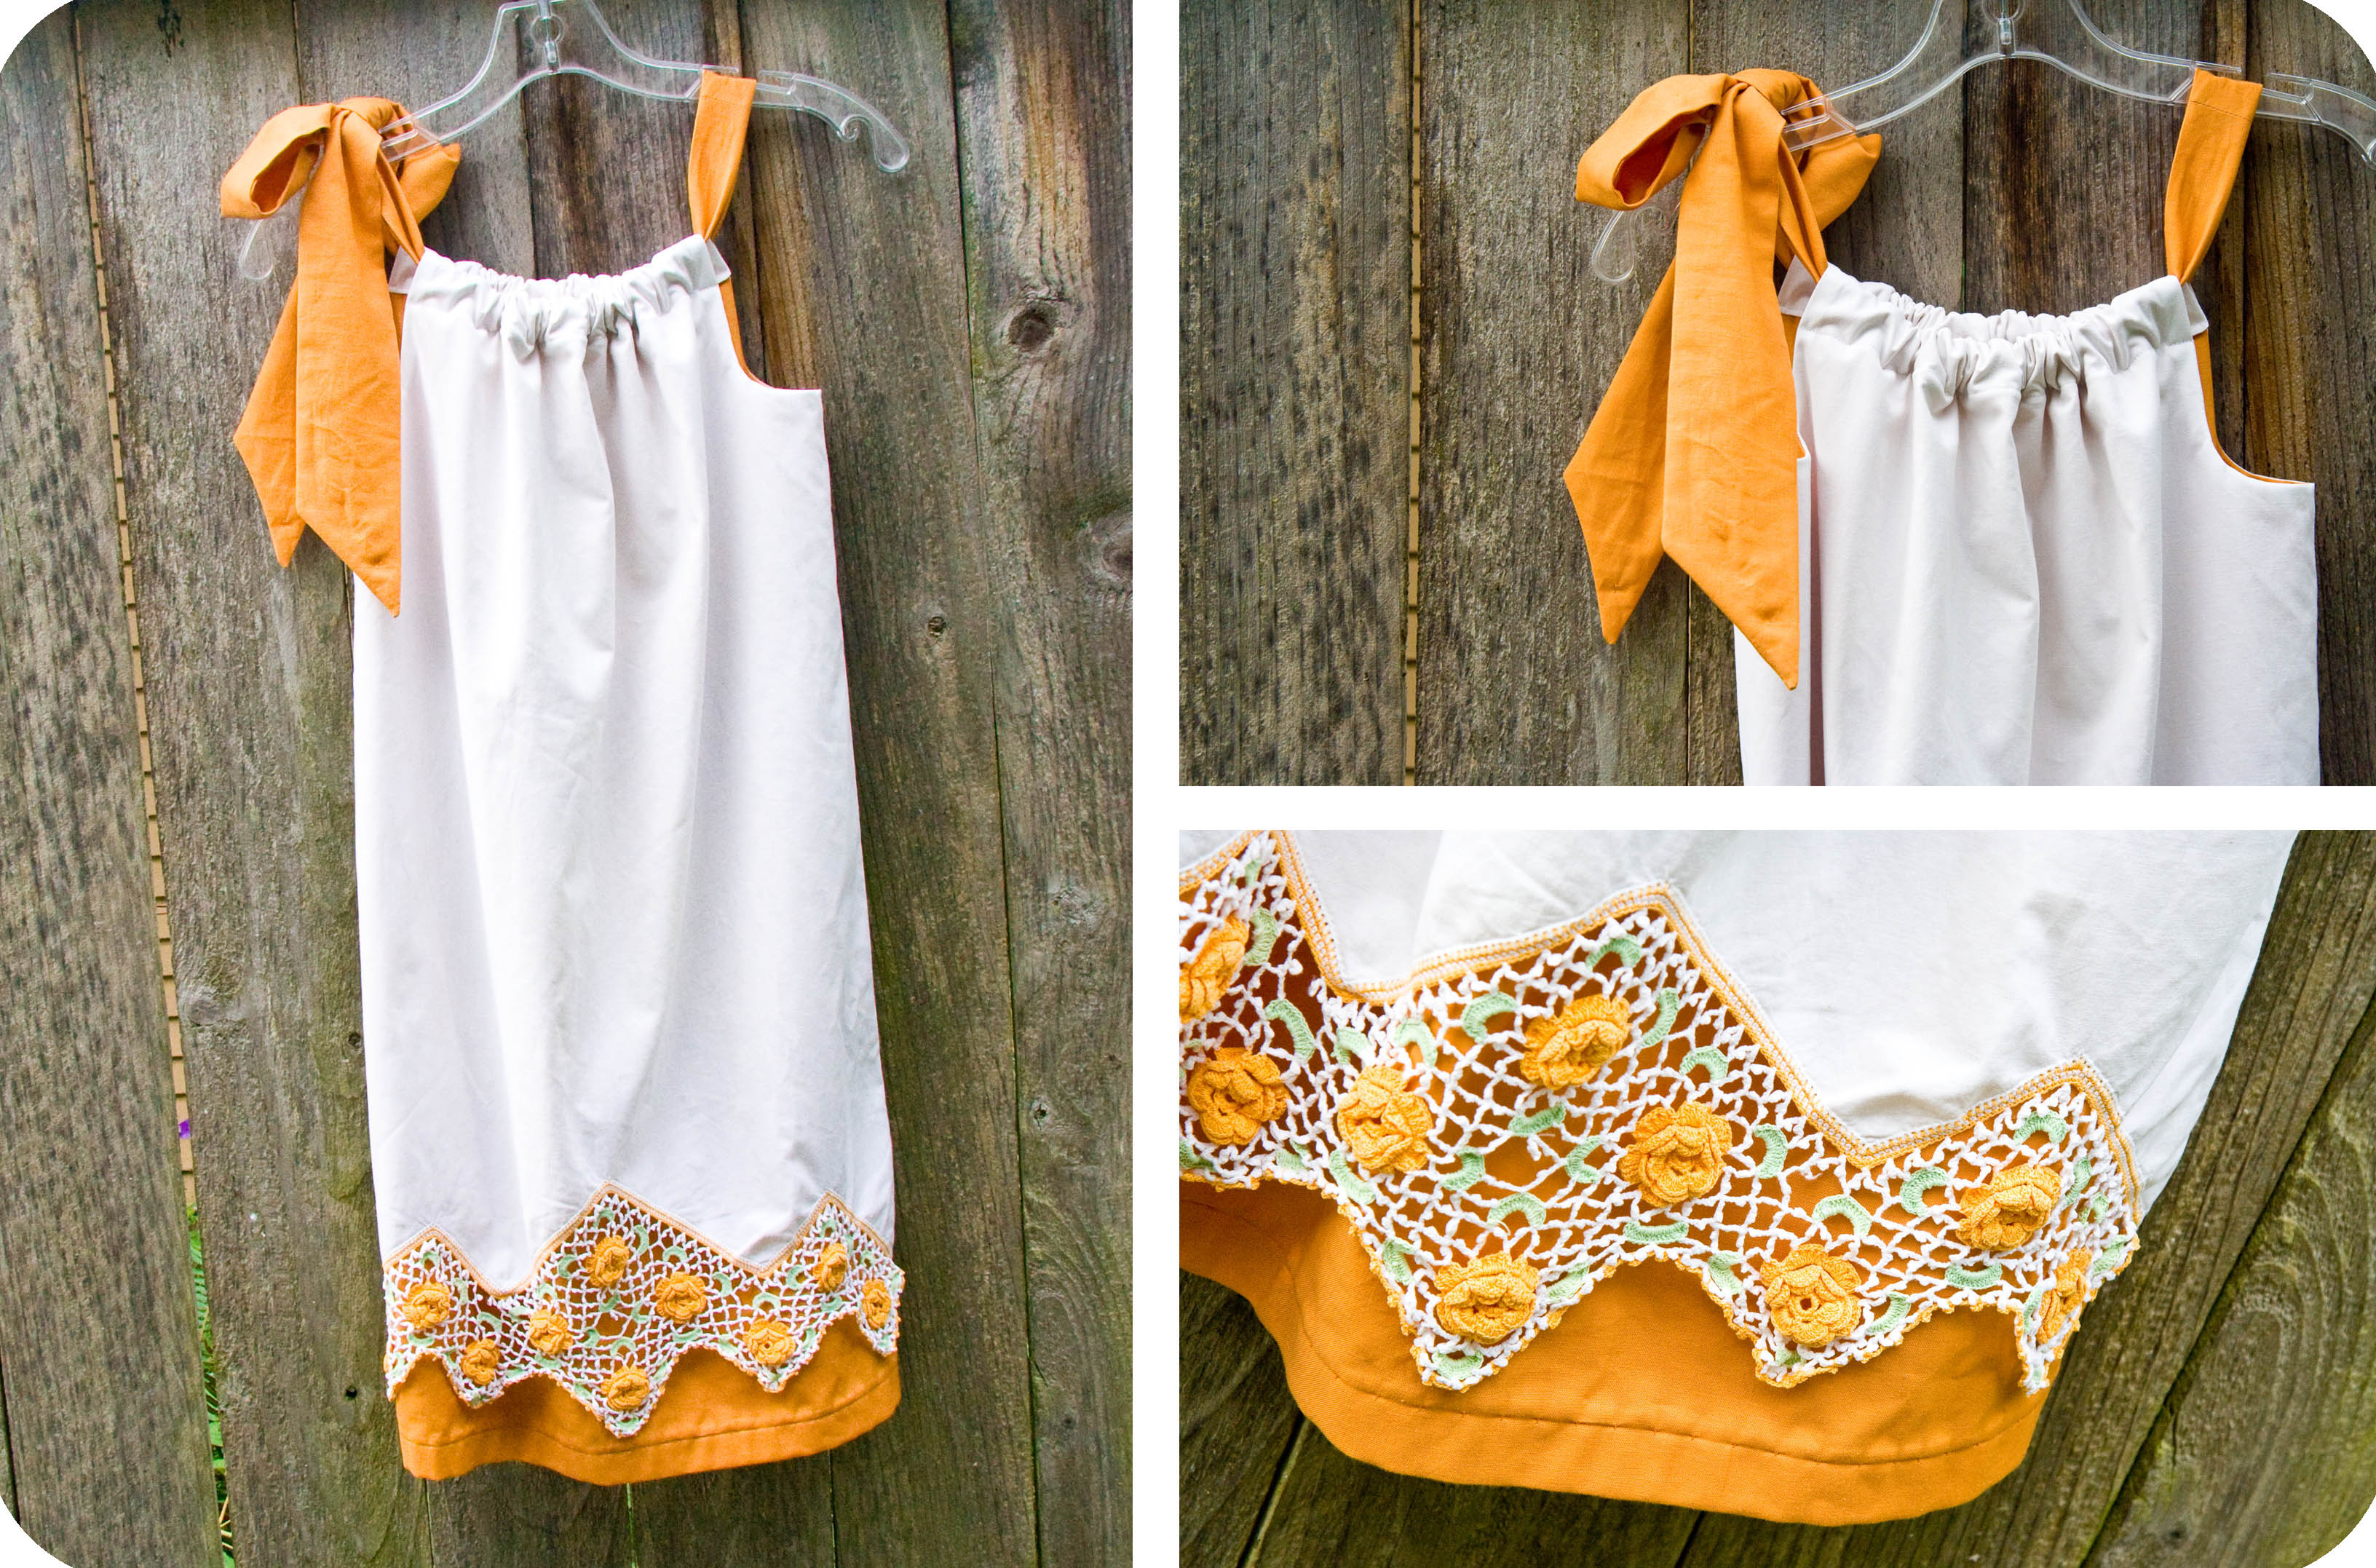 Diy Pillowcase Step By Step: The Pillowcase Dresses are Done! Check! –,